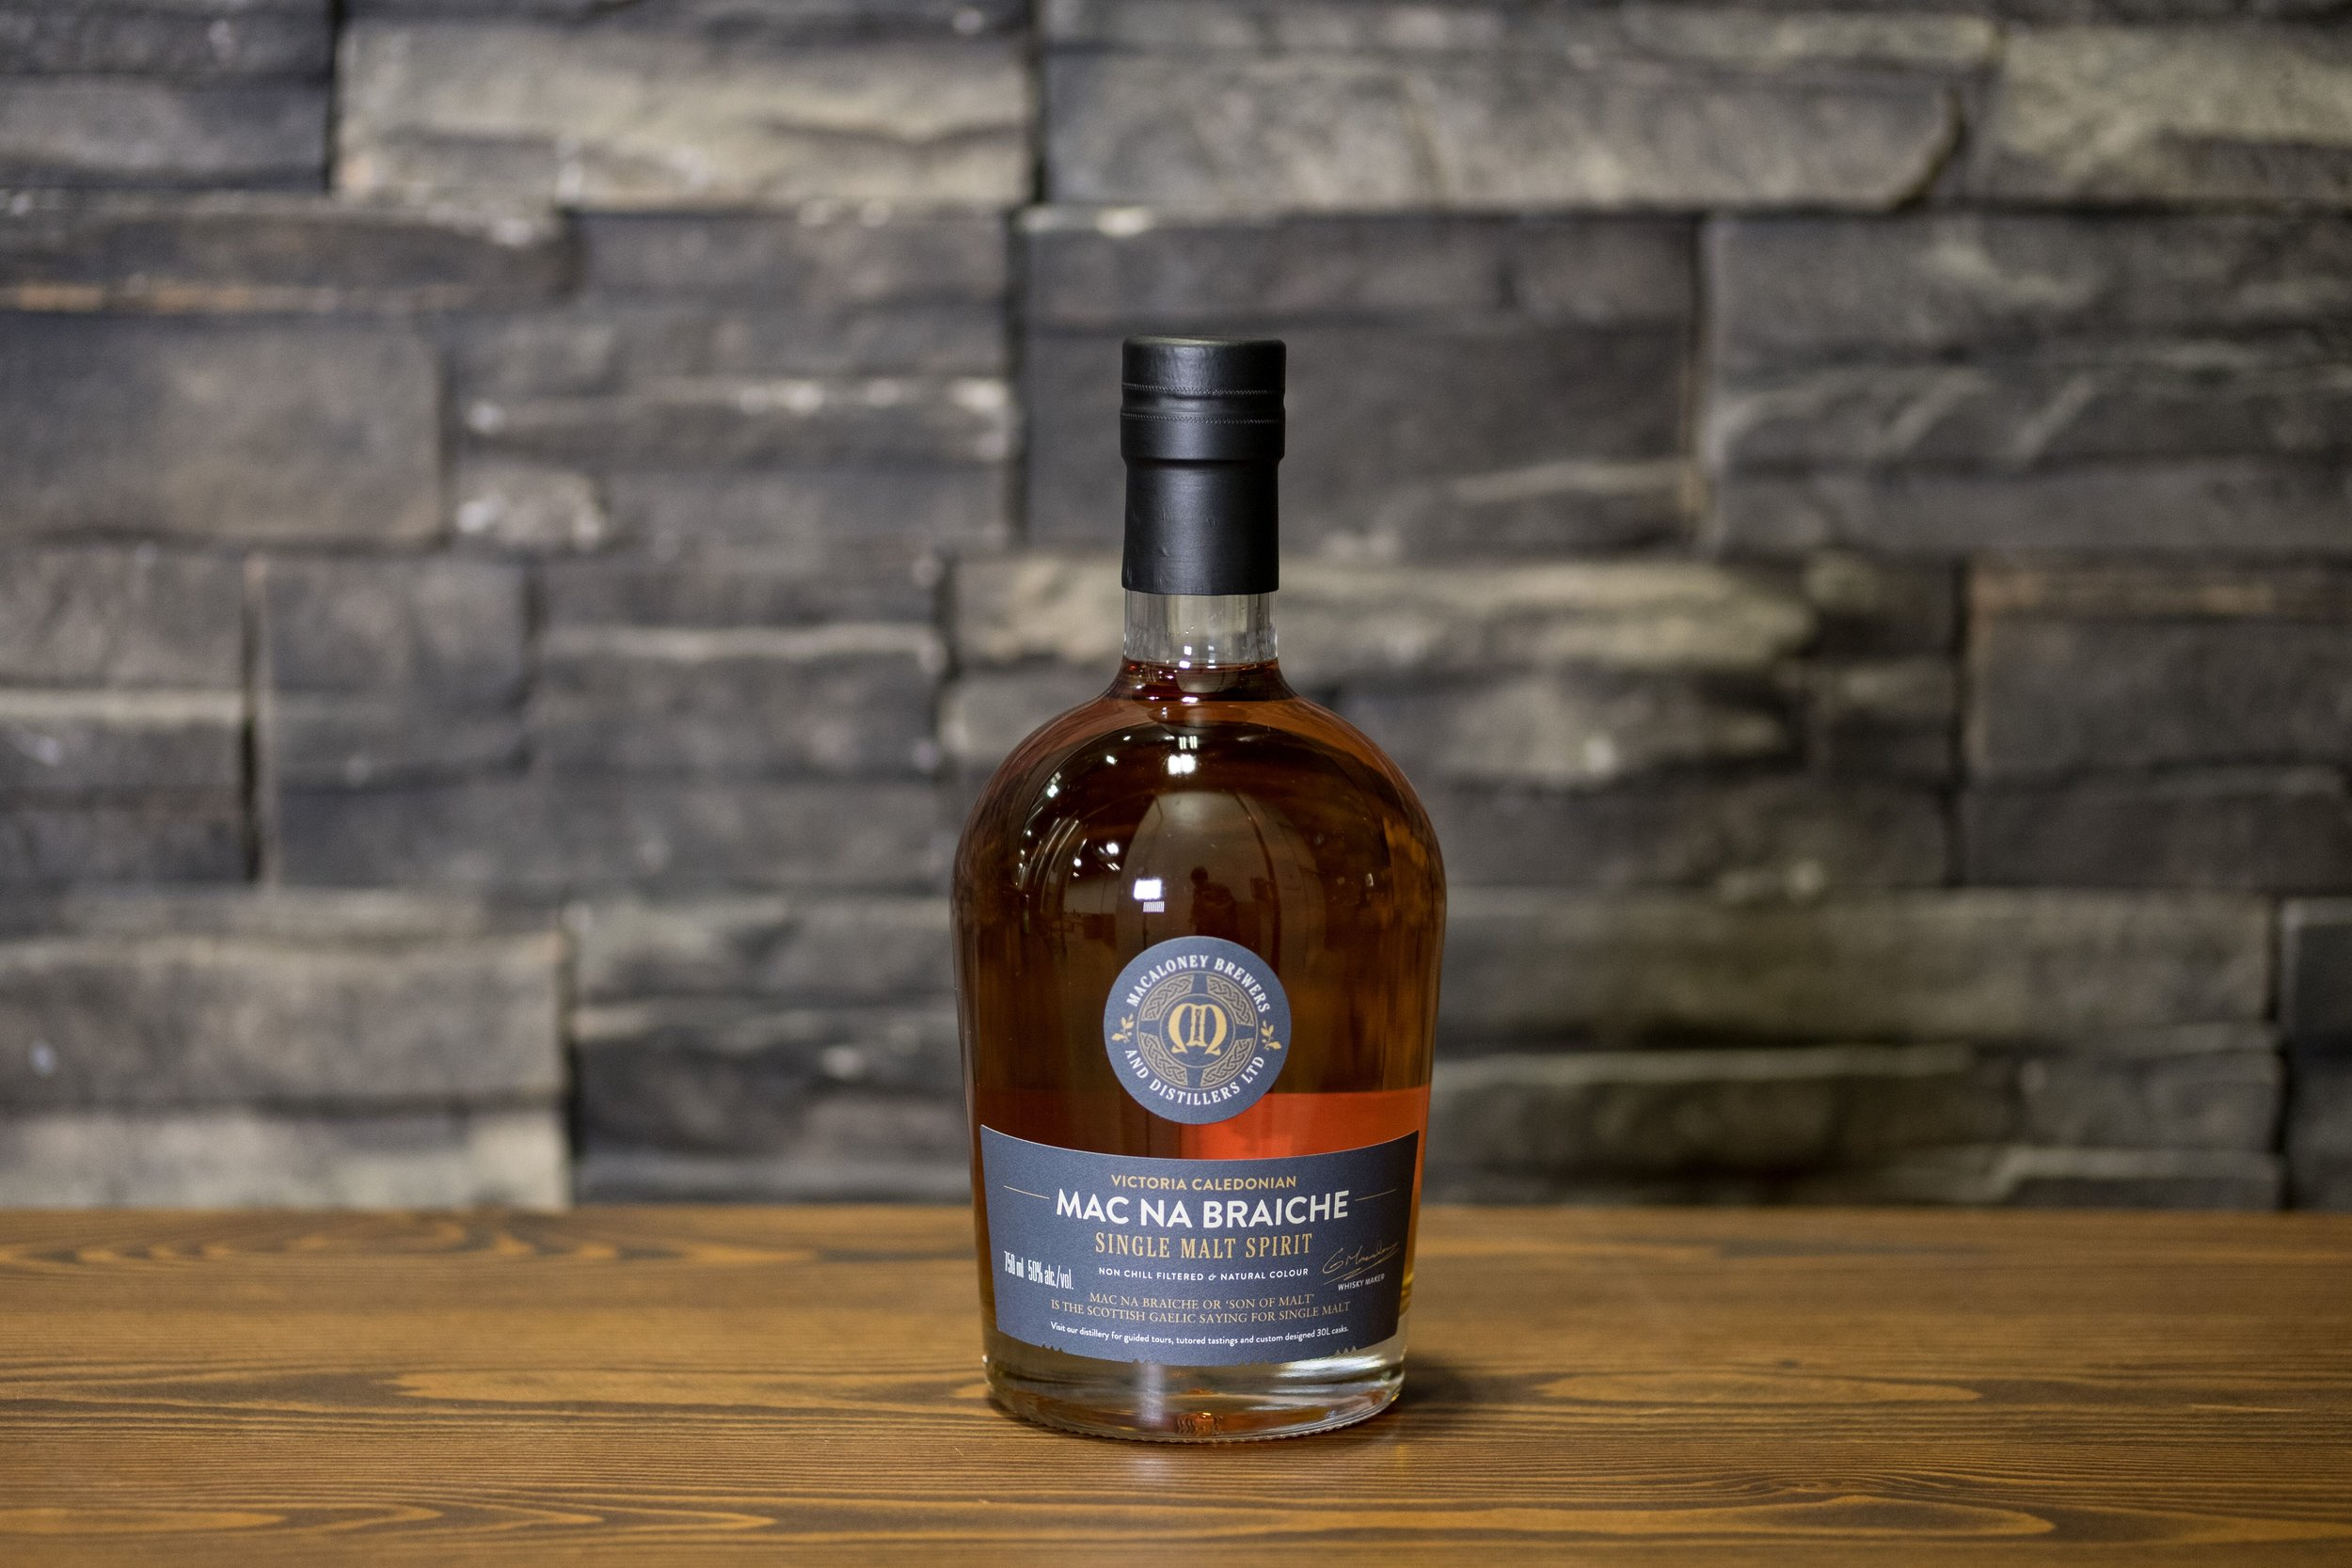 Image courtesy of Victoria Caledonian Distillery.